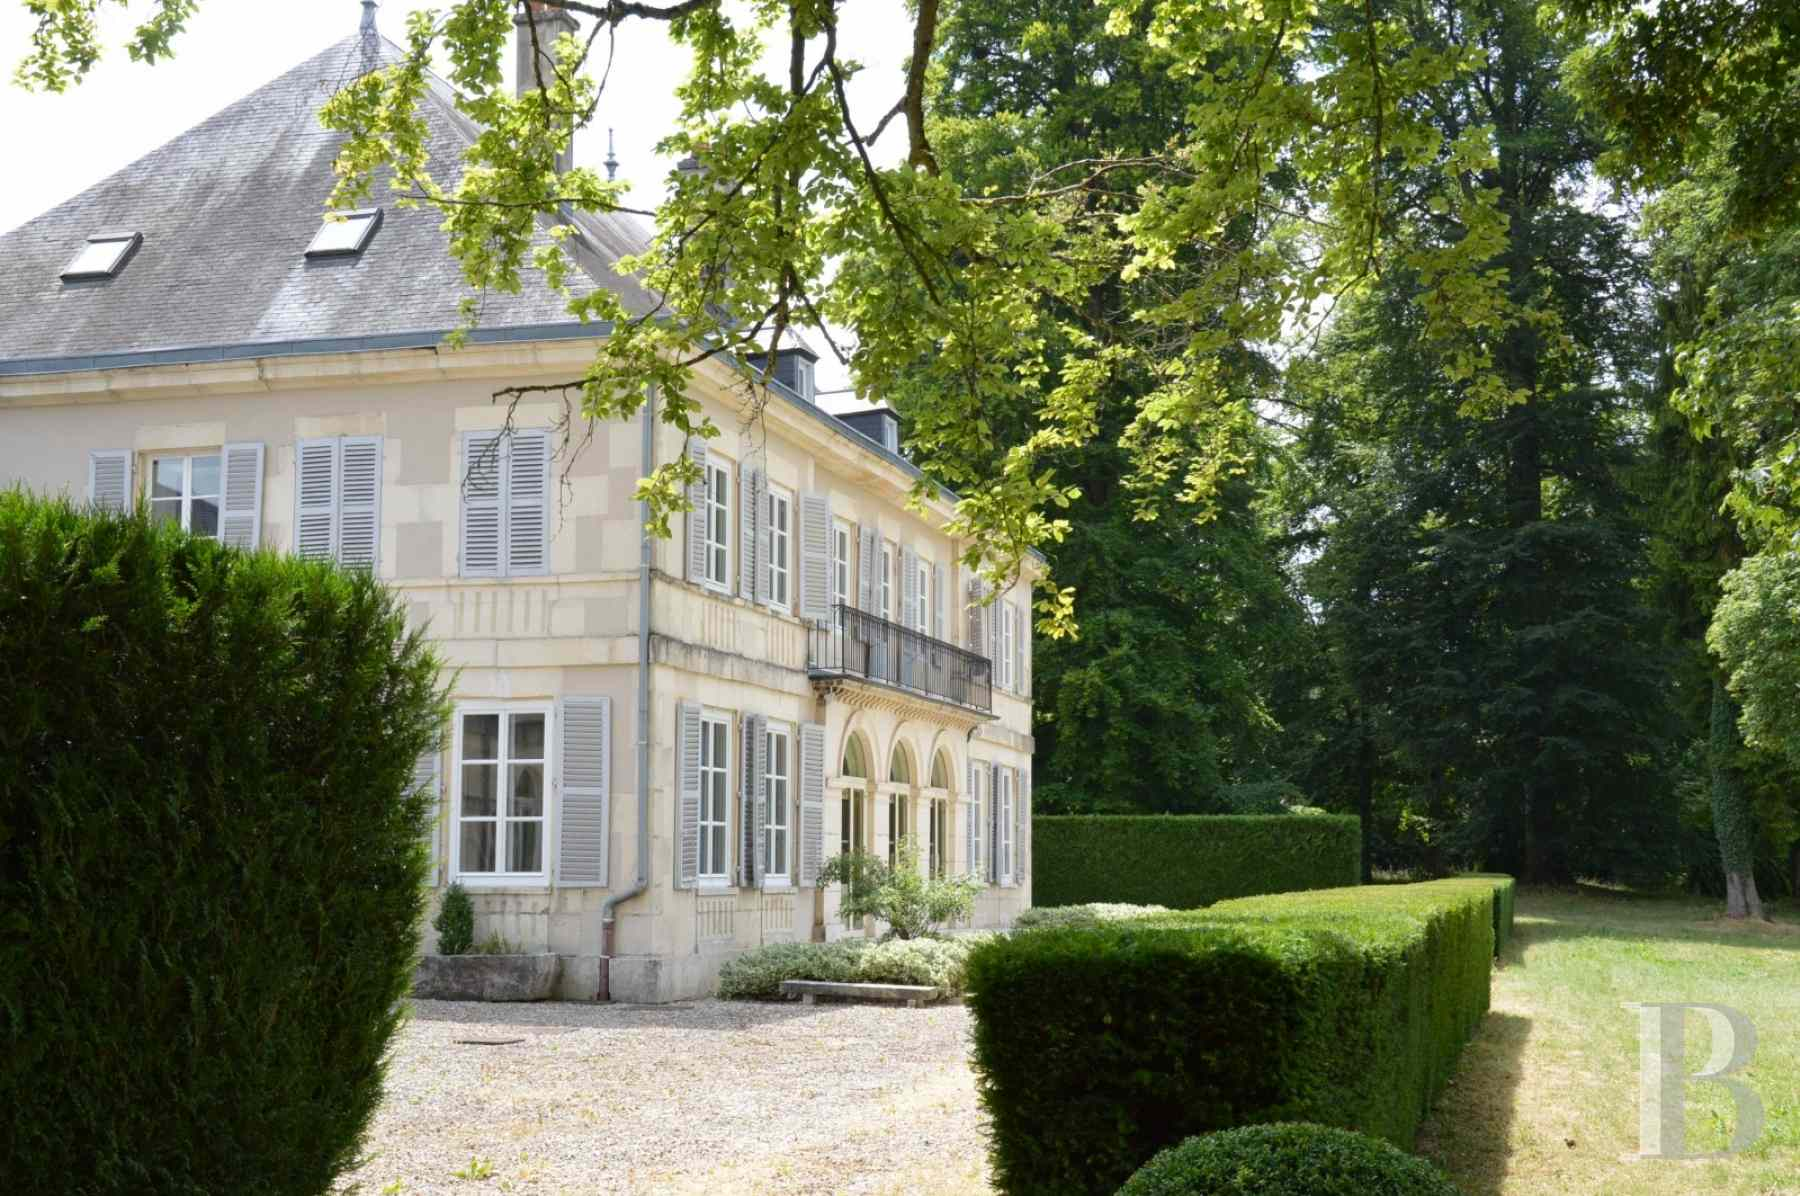 chateaux for sale France champagne ardennes residence 19th - 3 zoom